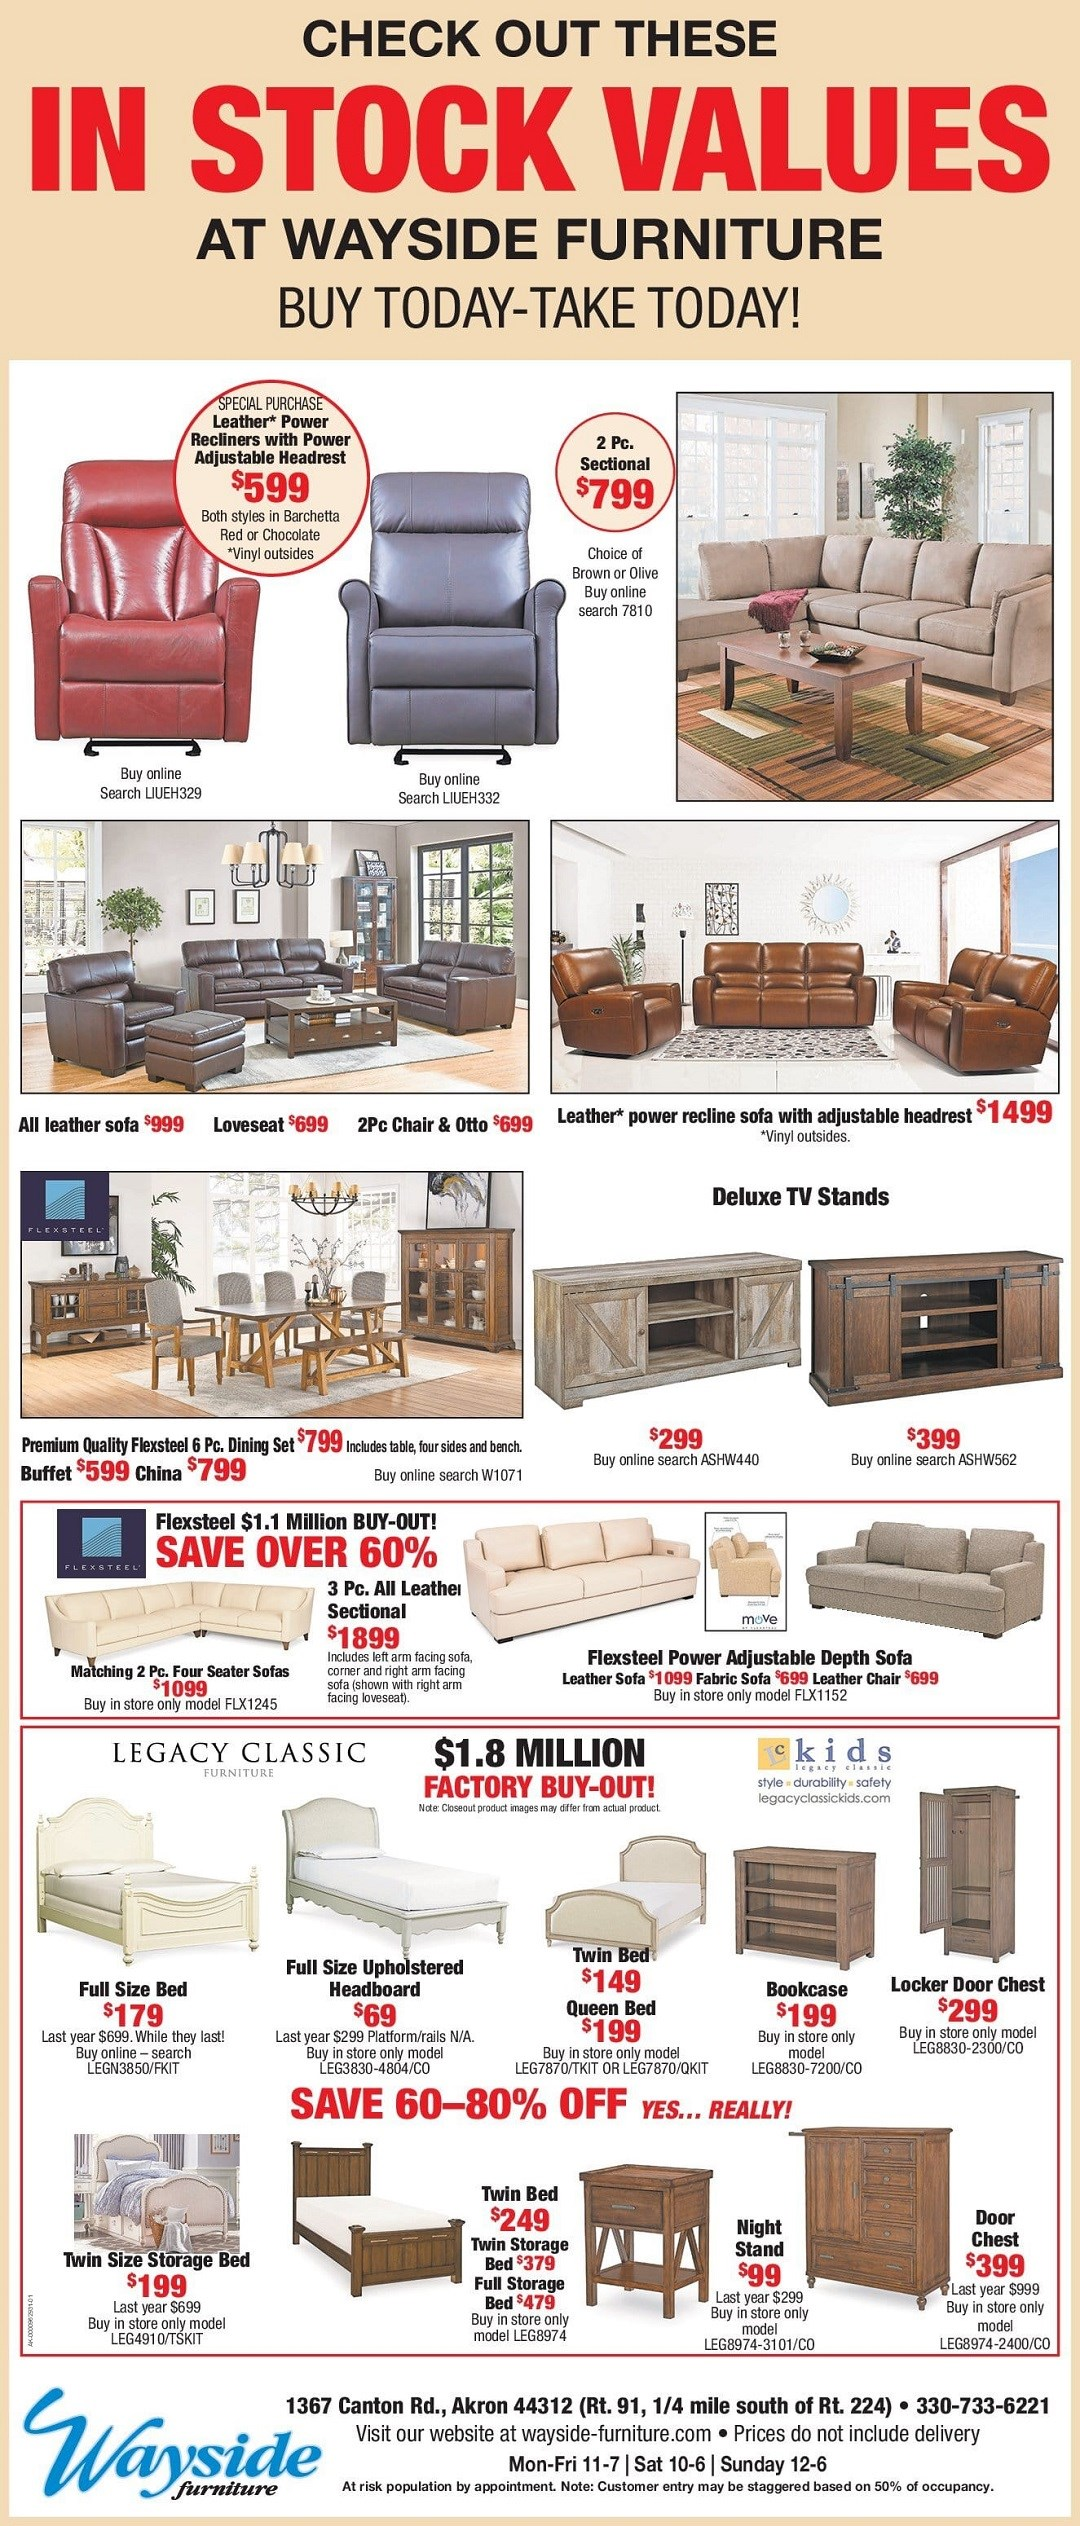 Wayside has tons of product in stock. Buy today take today